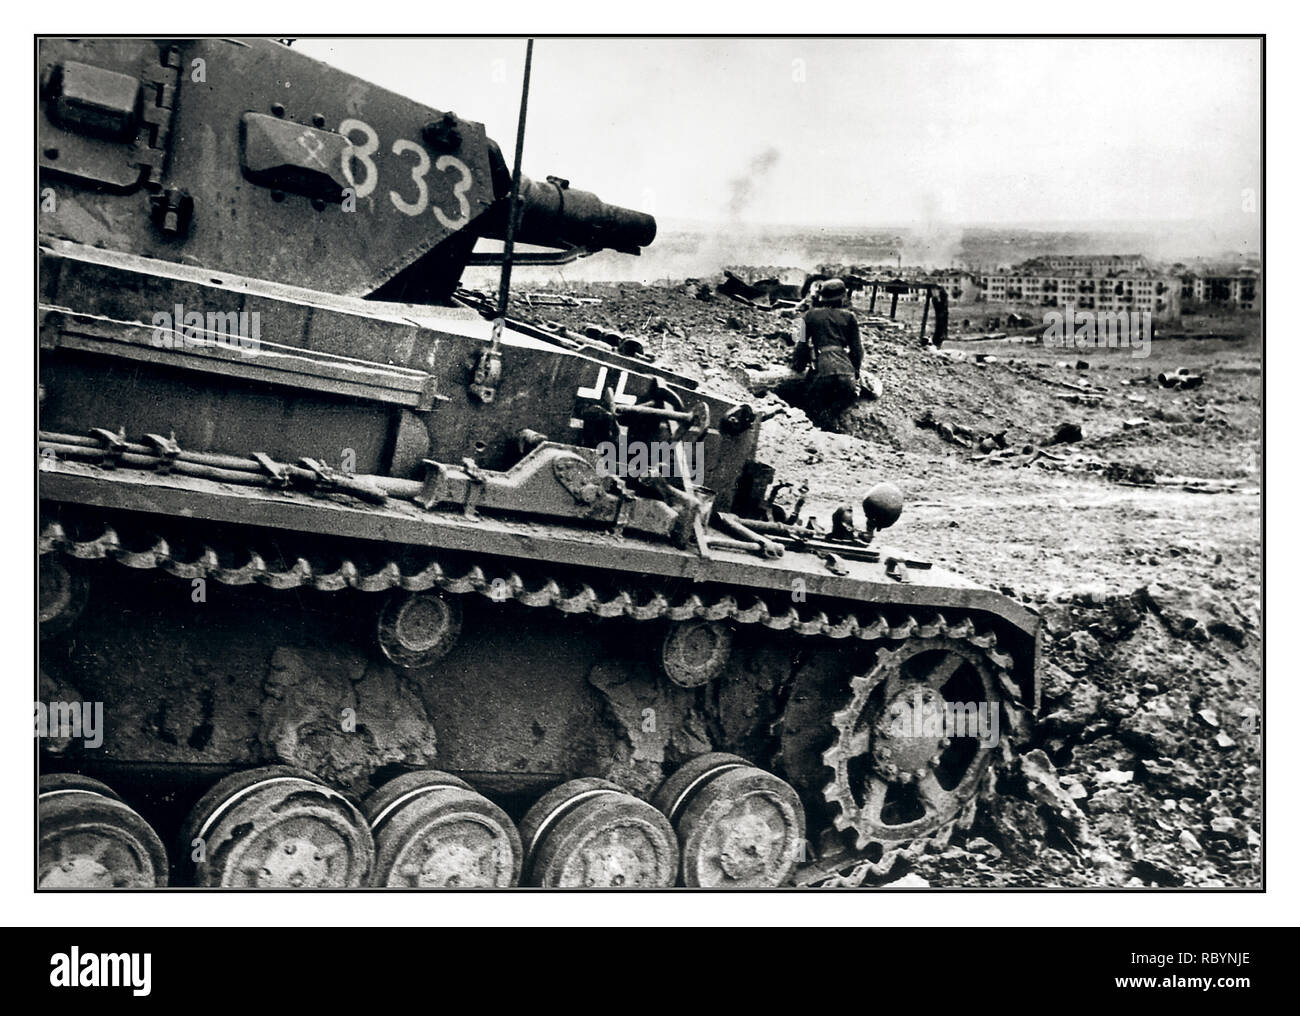 """BATTLE OF STALINGRAD German medium tank Panzer Pz.Kpfw. IV with the number """"833"""" of the 14th Panzer Division of the Wehrmacht on the German positions in the Battle of Stalingrad. Stalingrad, USSR October 1942 - Stock Image"""